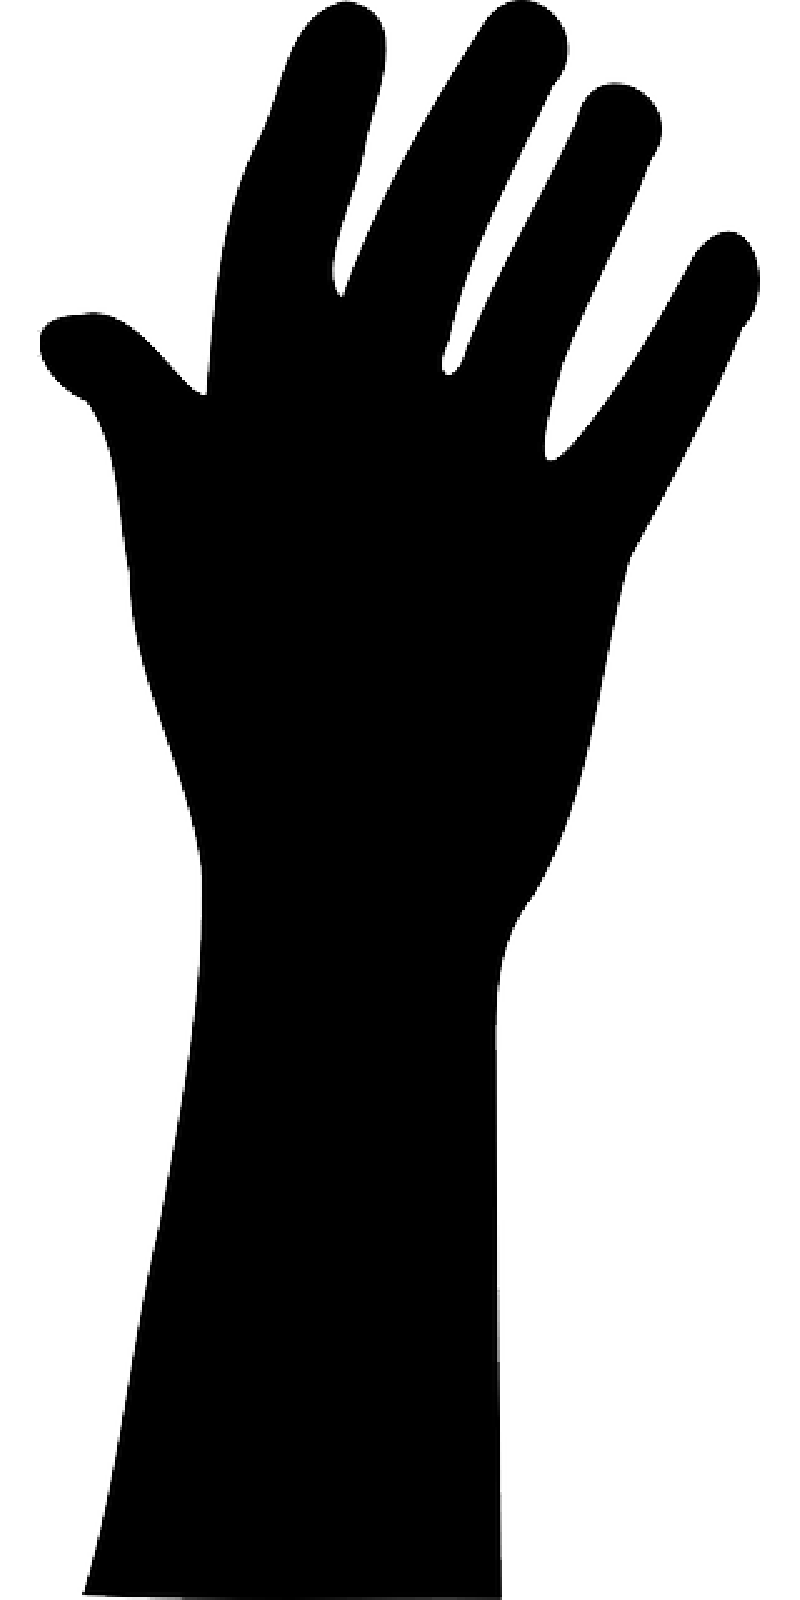 Silhouette at getdrawings com. Guy clipart arm raised